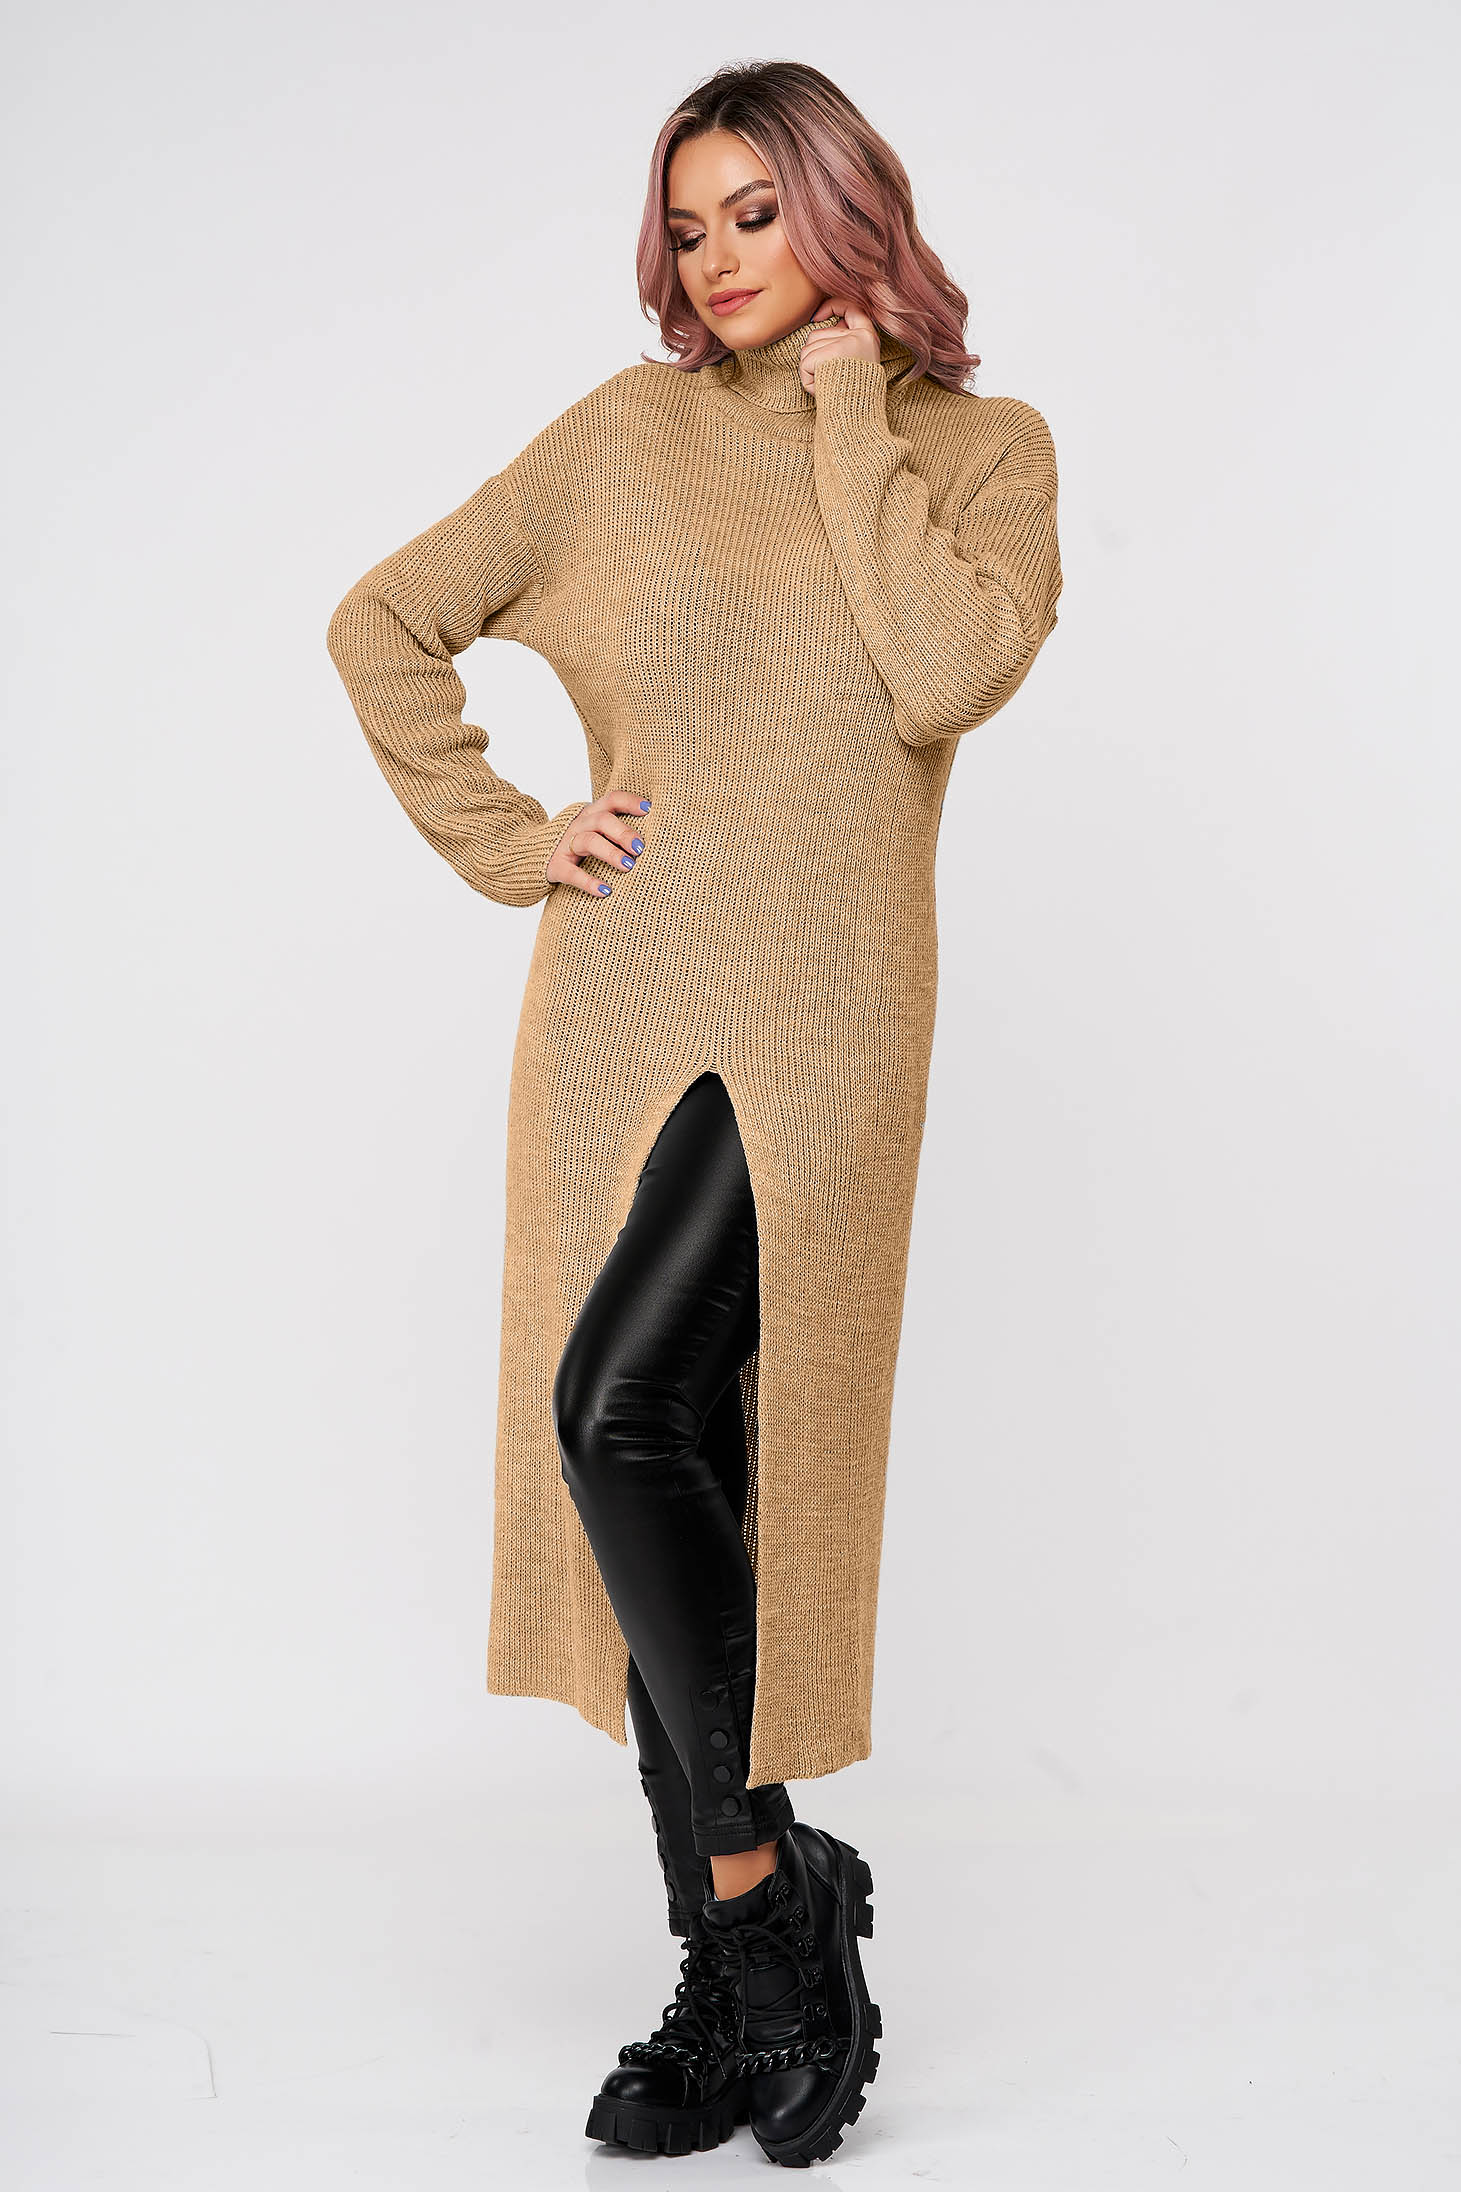 Cappuccino sweater with turtle neck with easy cut casual knitted fabric